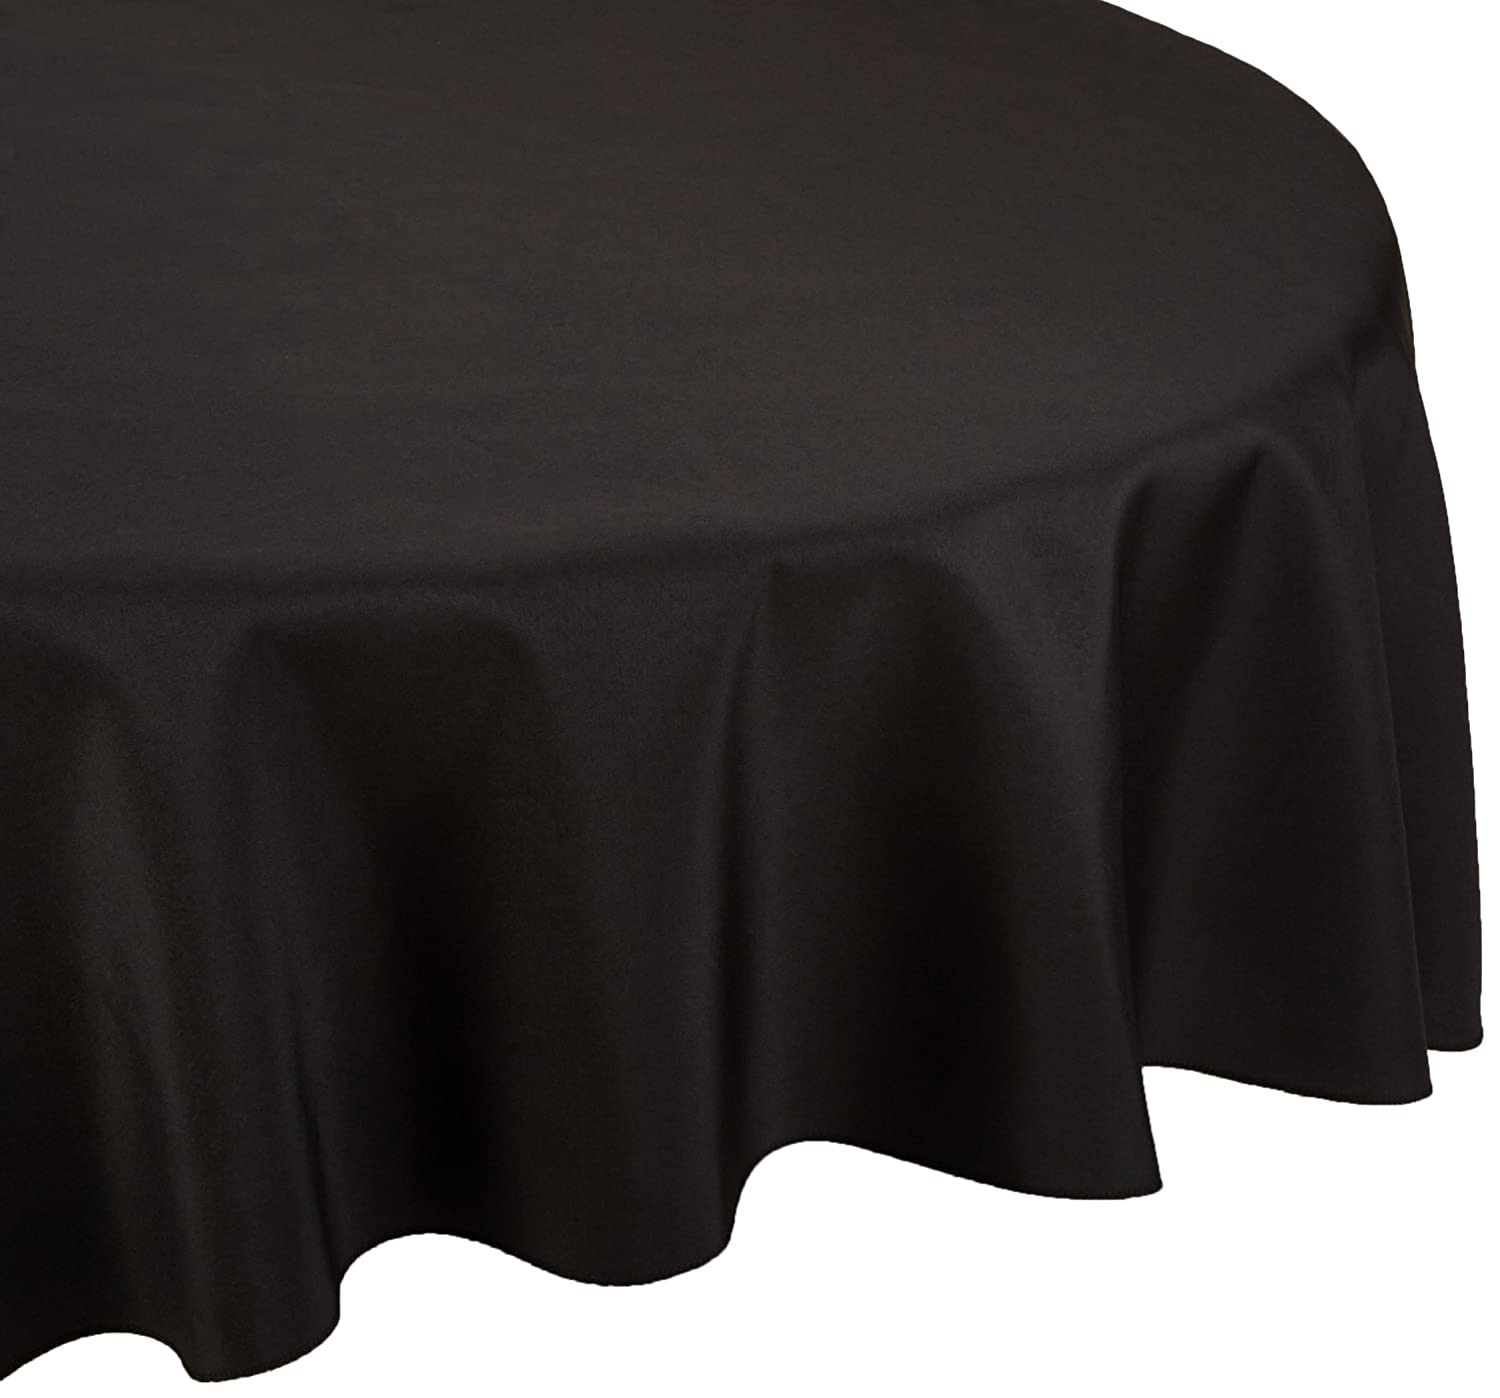 Design Black Tablecloth amazon com linentablecloth 120 inch round polyester tablecloth black home kitchen